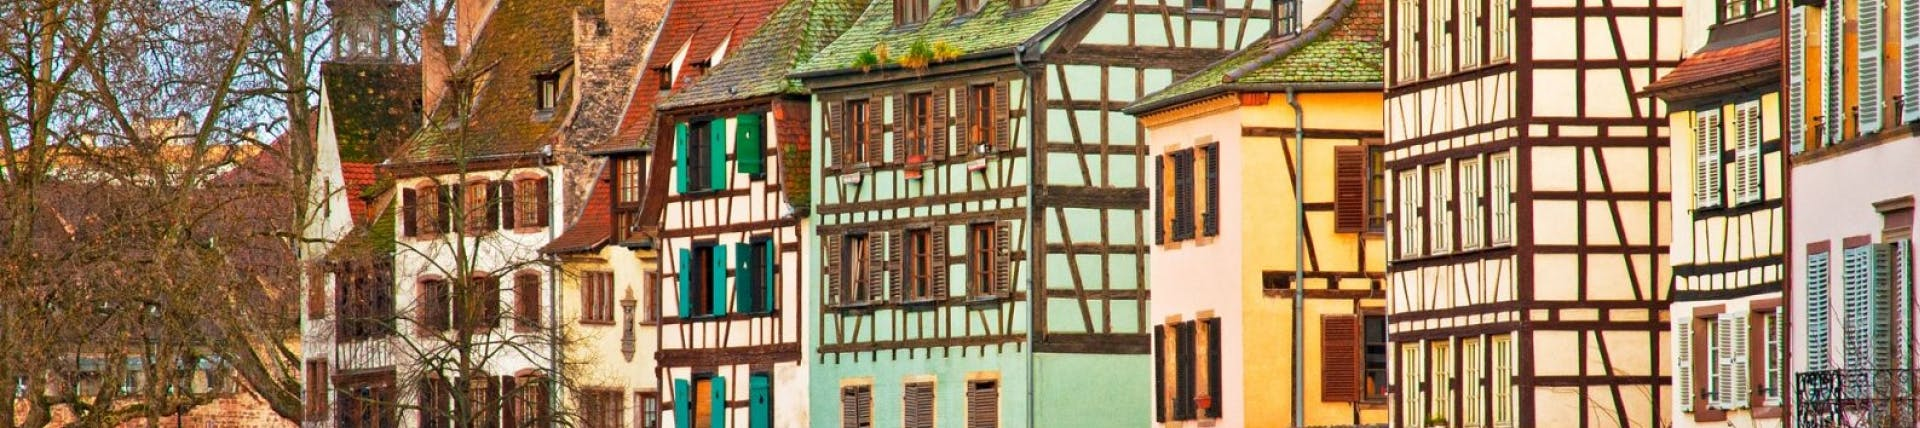 Picture of Strasbourg